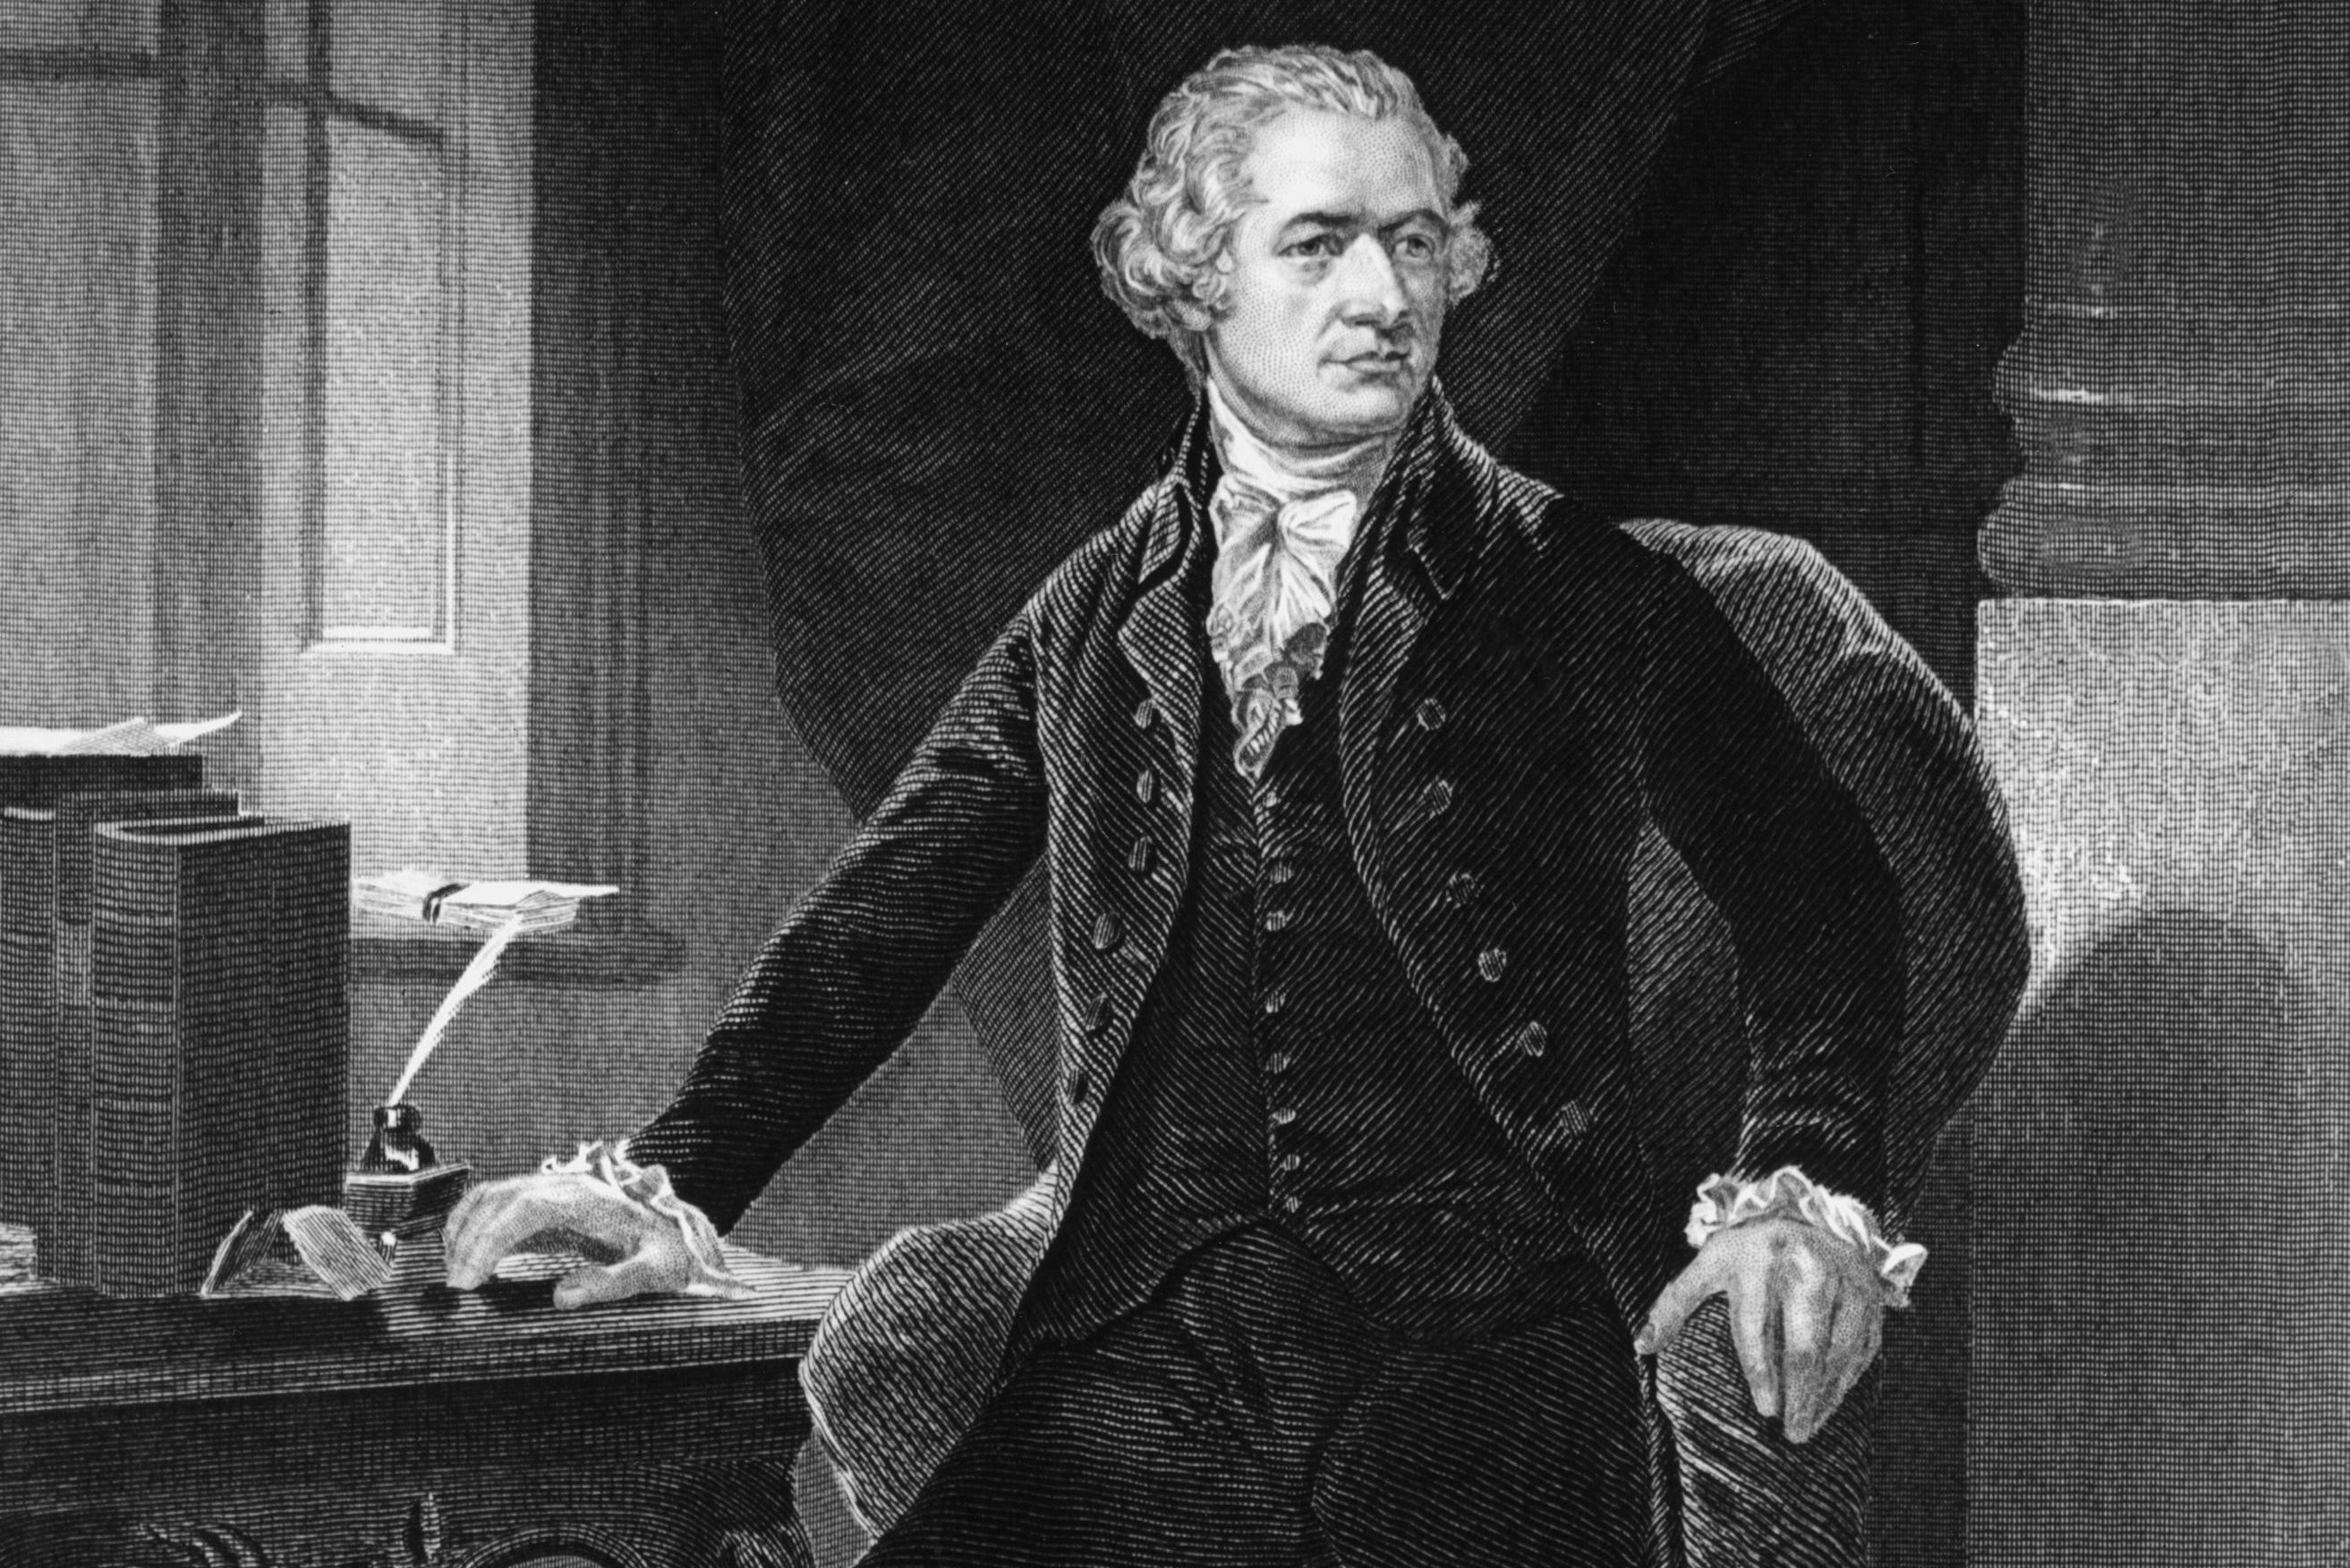 alexander hamilton and the american revolution As the first secretary of the us treasury, alexander hamilton built the foundations of the national banking system and wielded more power in the earliest years of american democracy than any.